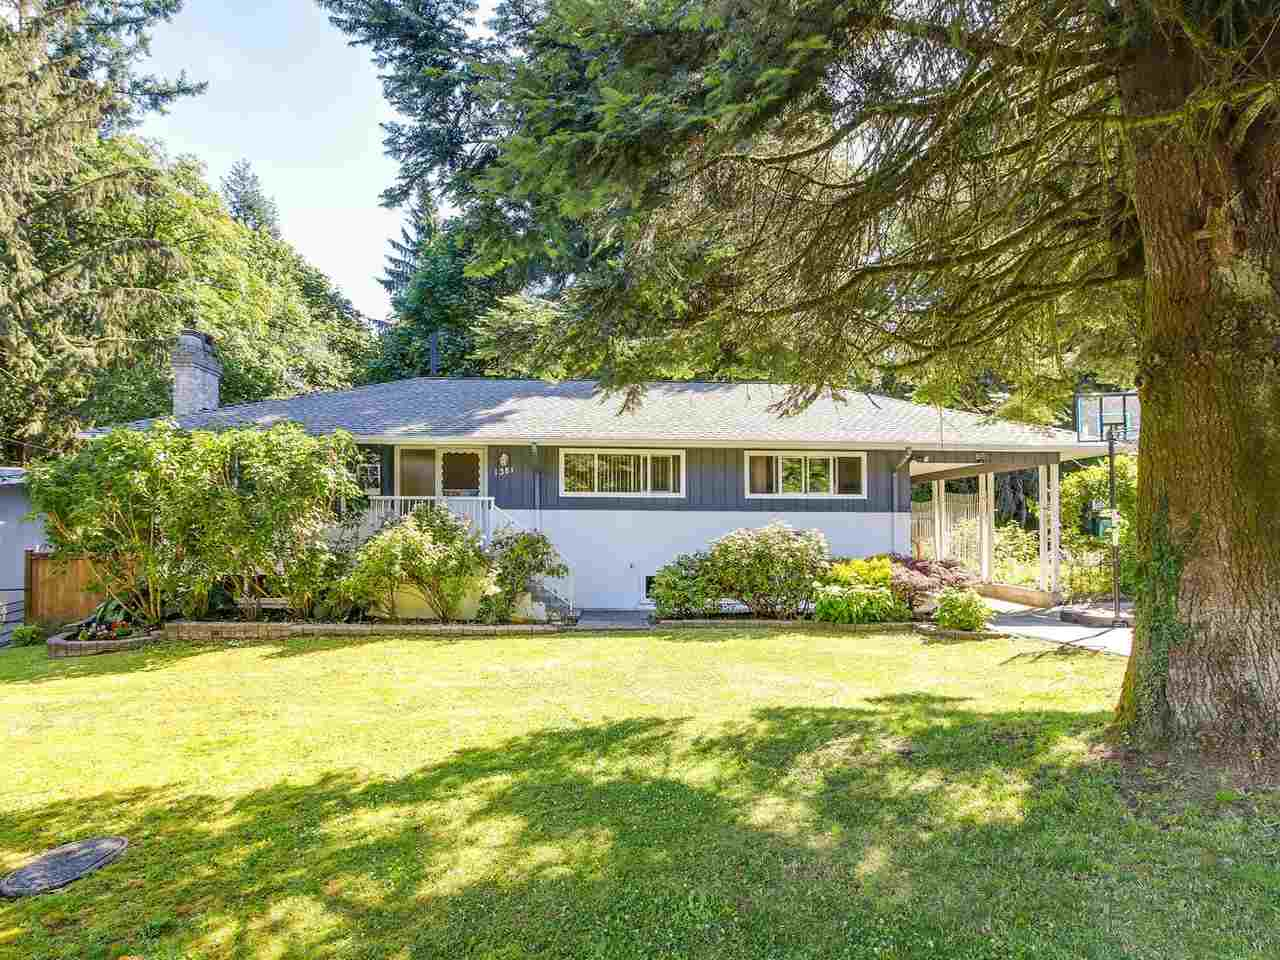 5 Bedroom house on quiet cul-de-sac in prime Harbour Chines location. Large lot (approx. 1/3 acre- 14,668 square feet) with 60' frontage 110' at the back and 154 deep on both sides. Very private yard backing onto ravine greenbelt. 2 gas fireplaces and hardwood floors. Newer roof and windows. Only second owner in its history. Peaceful area near Harbour View Elementary, All Saints school,shopping, parks and transportation. Open noon-2:00 Sunday October 29.